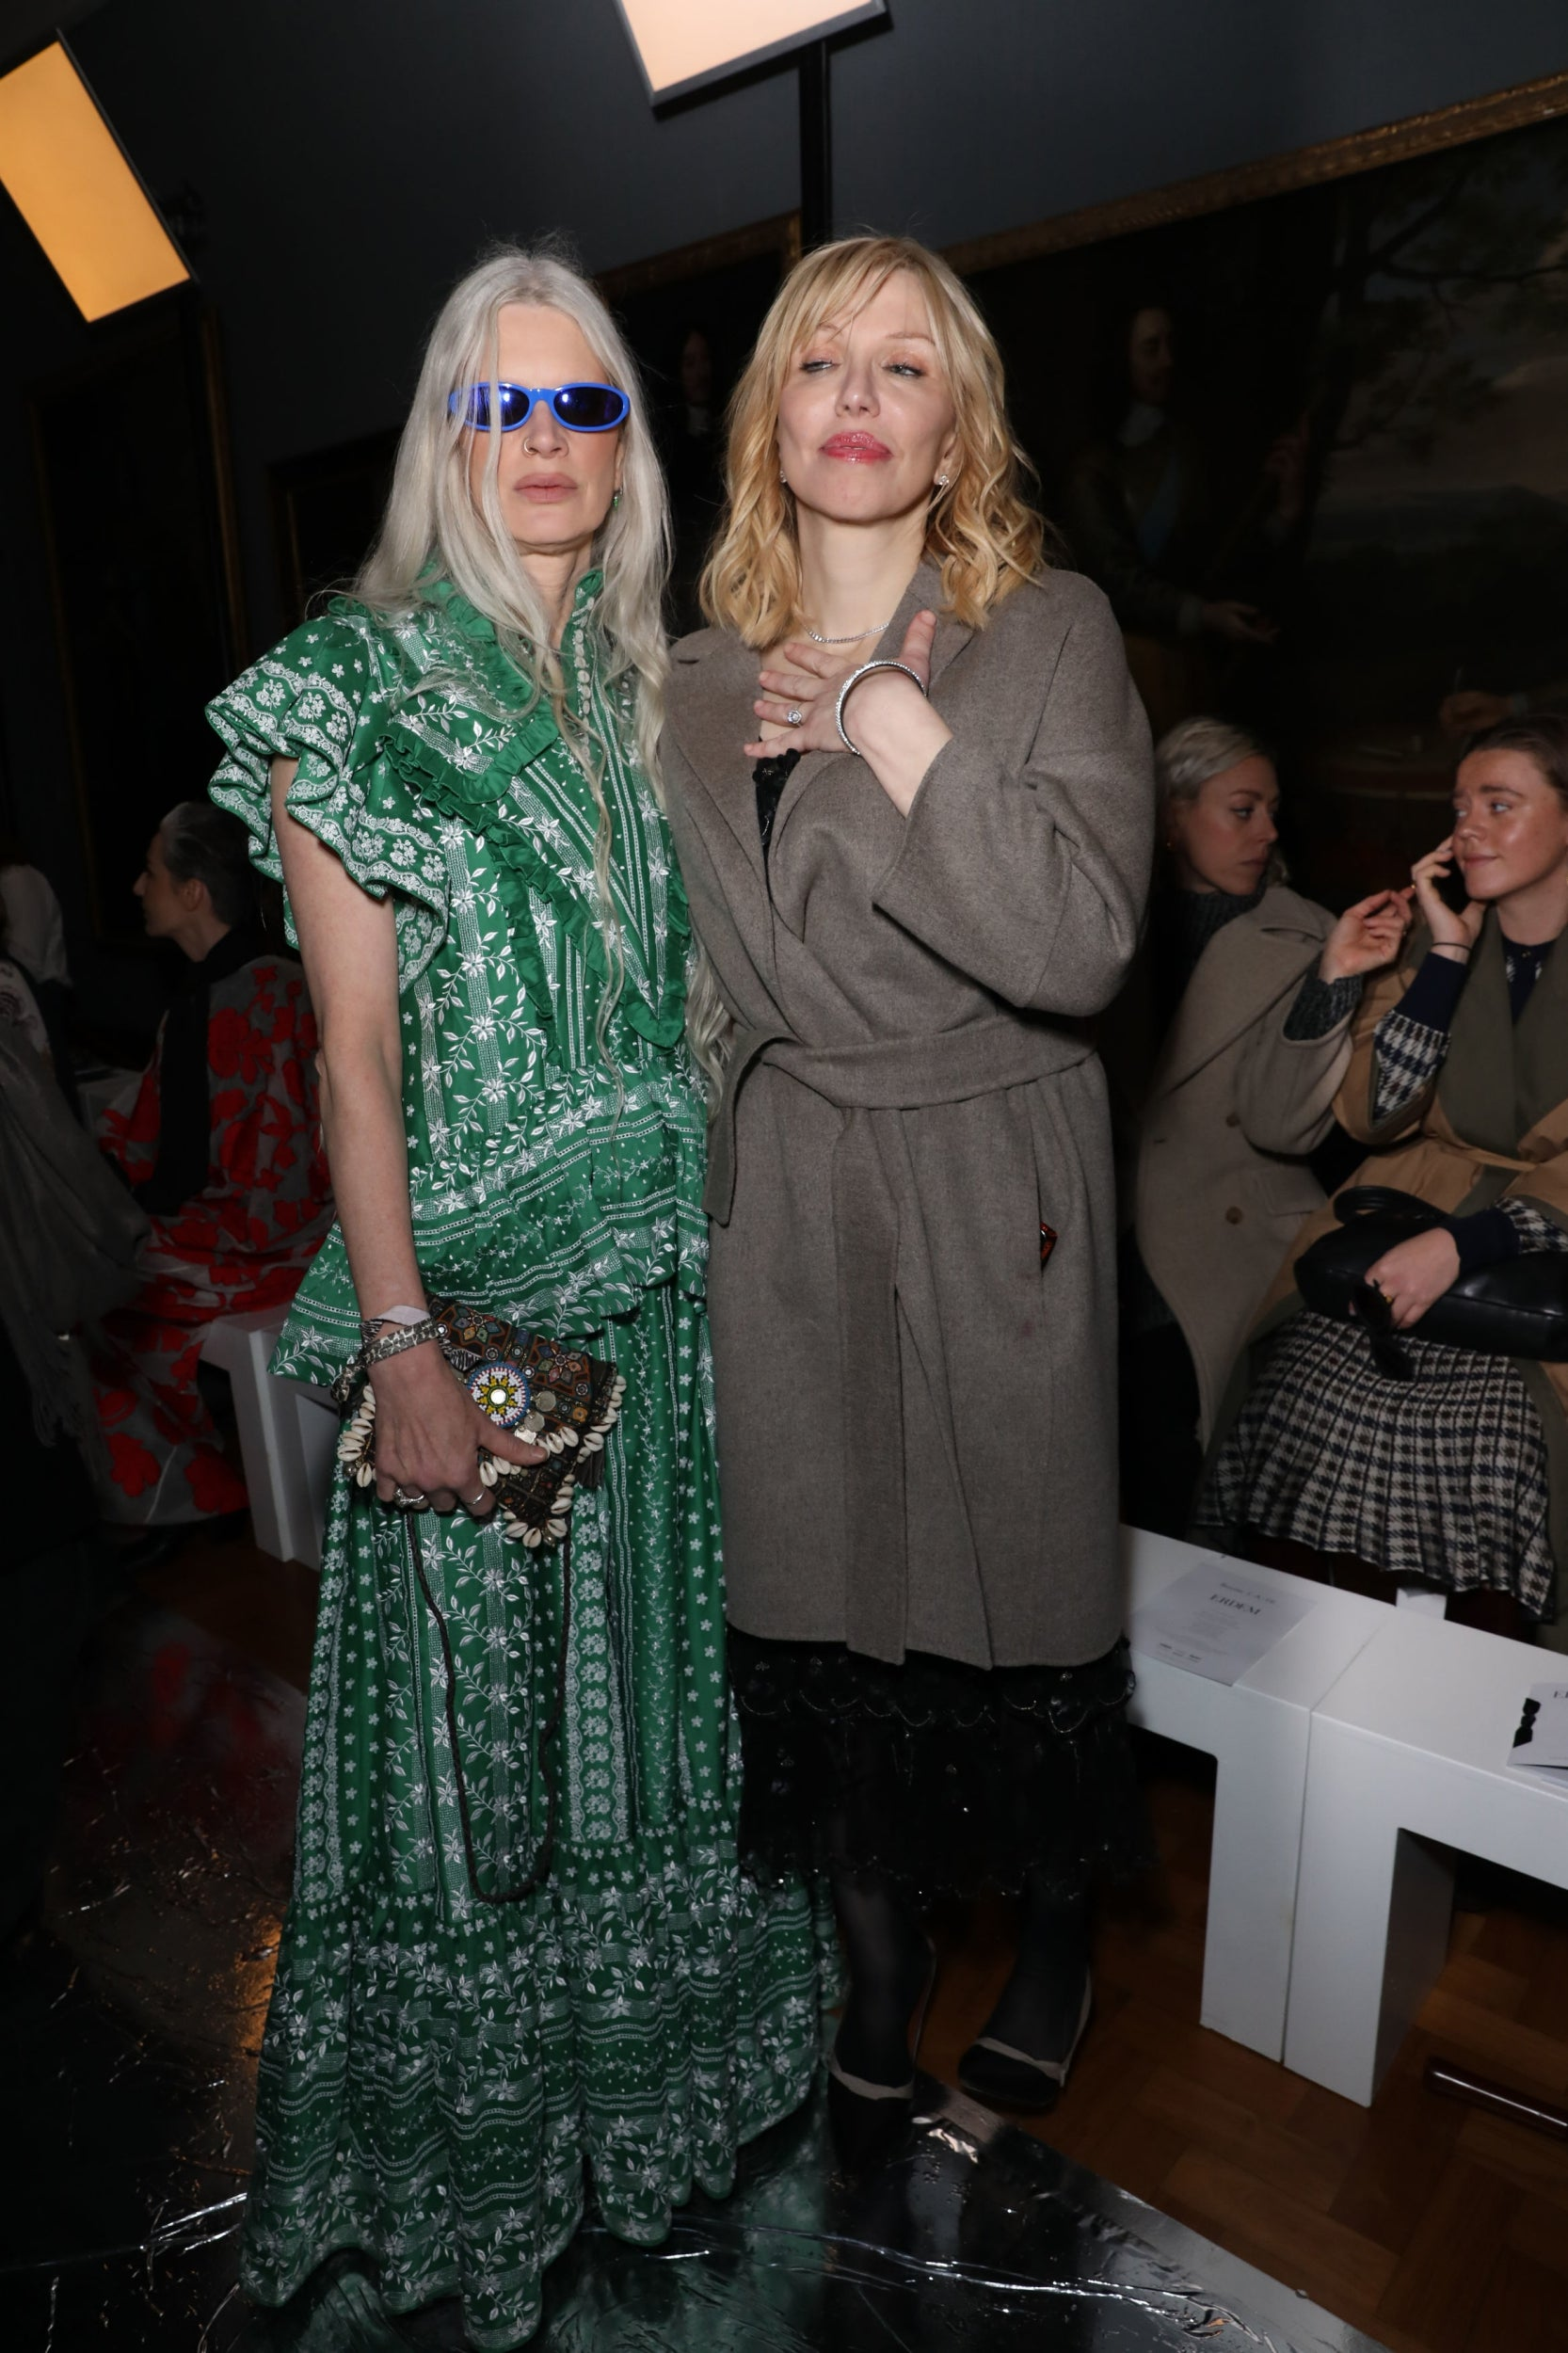 Kristen McMenamy and Courtney Love